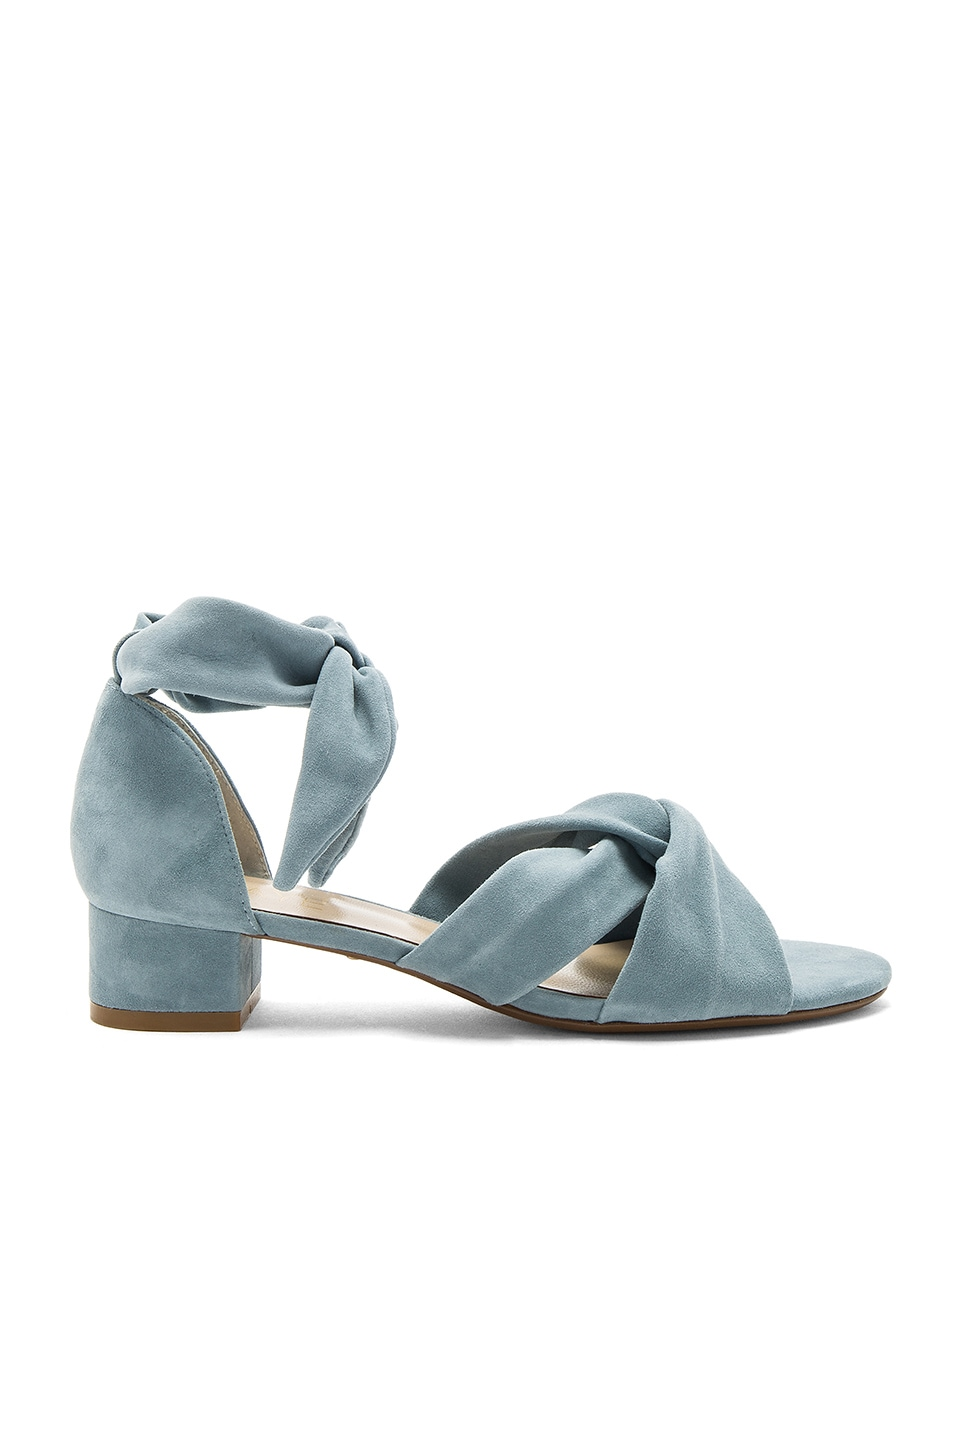 RAYE Aurora Sandal in Cloud